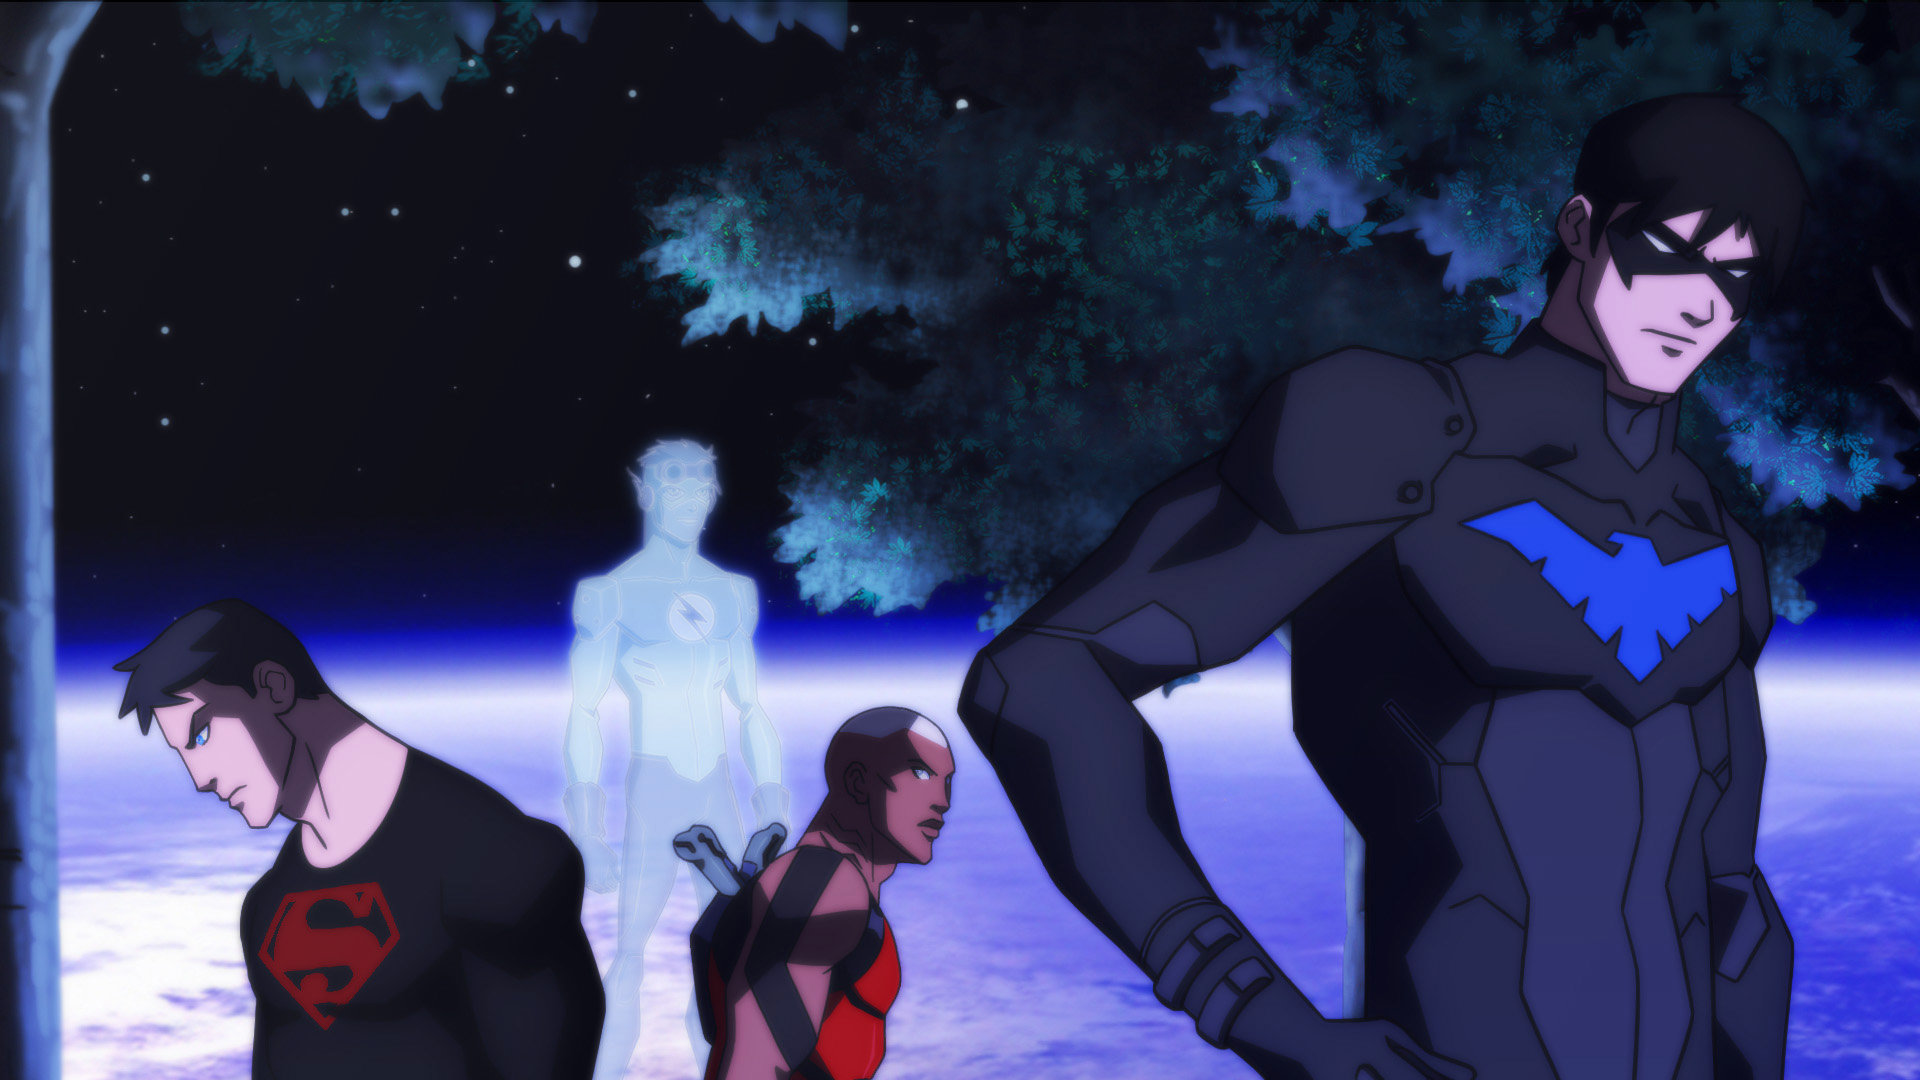 Download Hd 1920x1080 Young Justice Computer Wallpaper ID391166 For Free